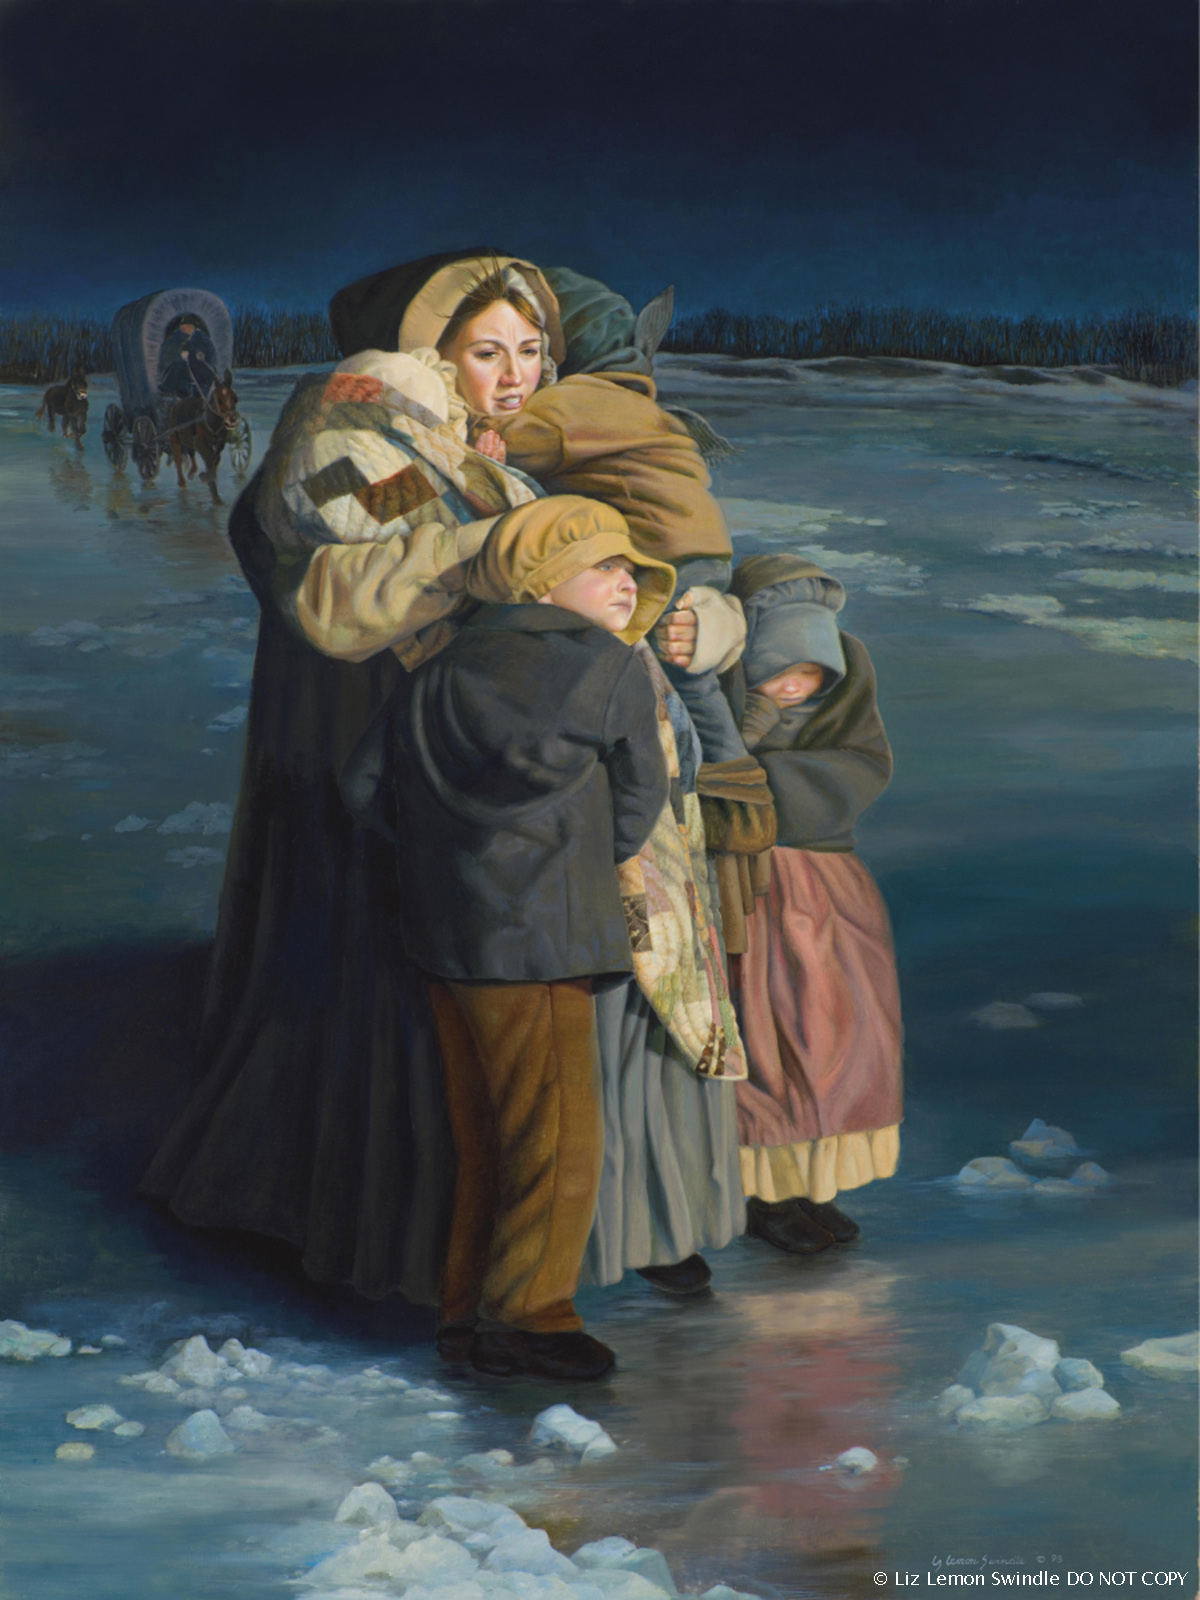 A painting by Liz Lemon Swindle of Emma Hale Smith holding her children close to her as they cross the frozen Mississippi River.